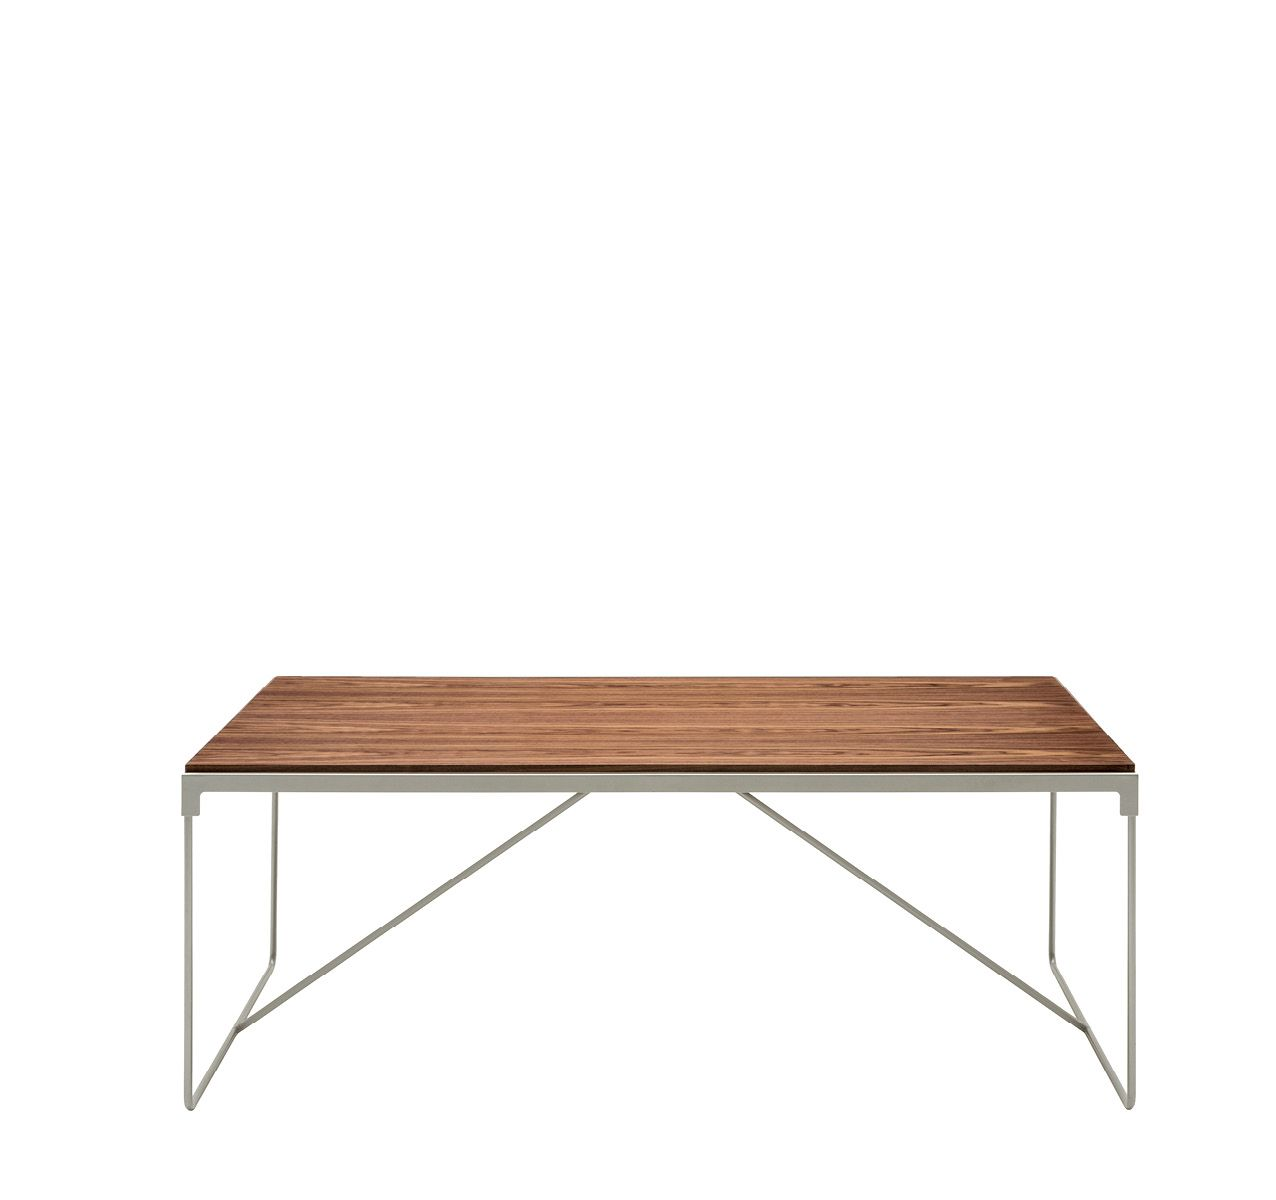 MINGX Rectangular Table Bronze, 200